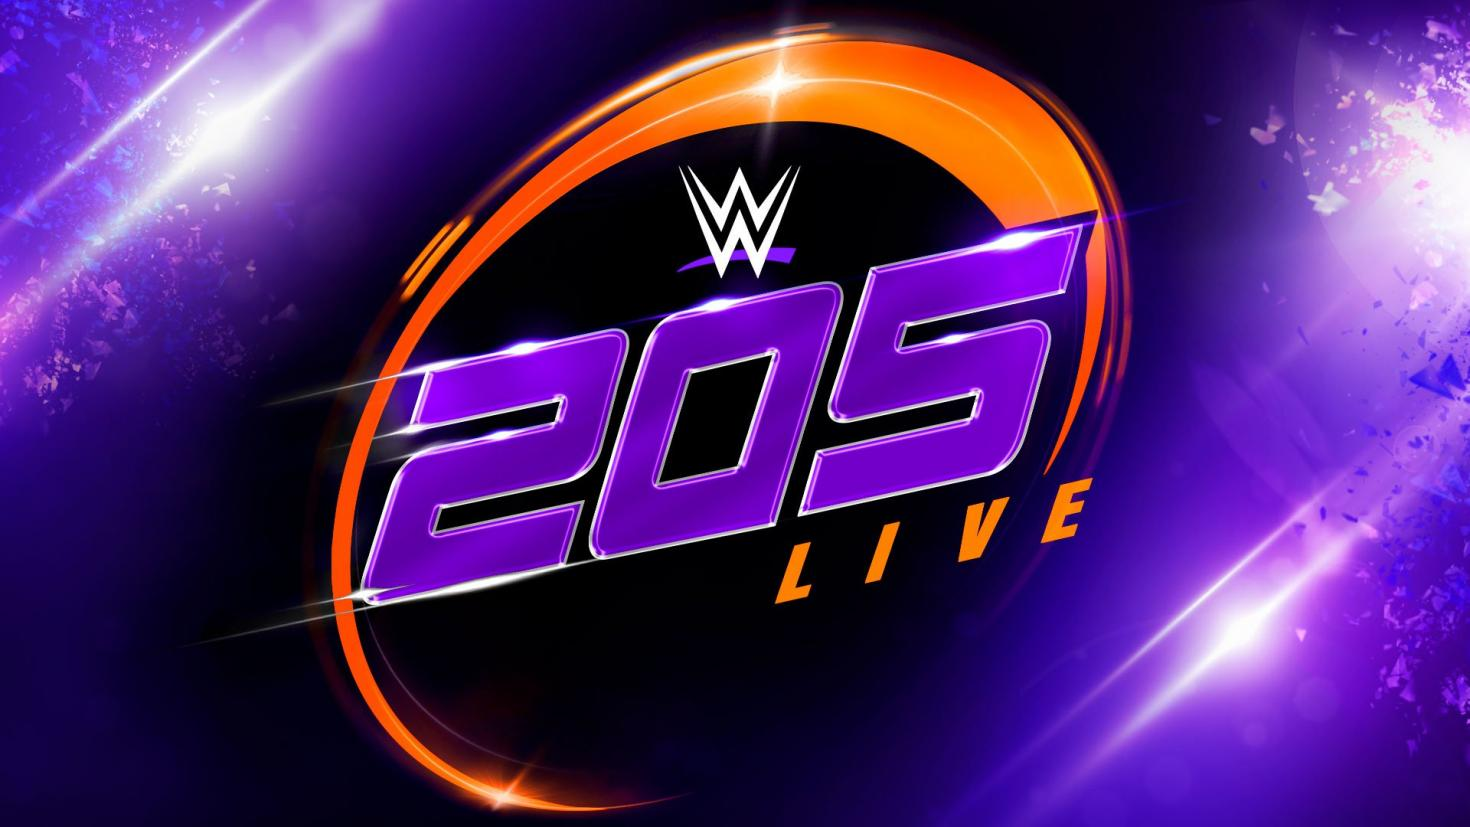 This week's WWE 205 Live will take place at Full Sail University